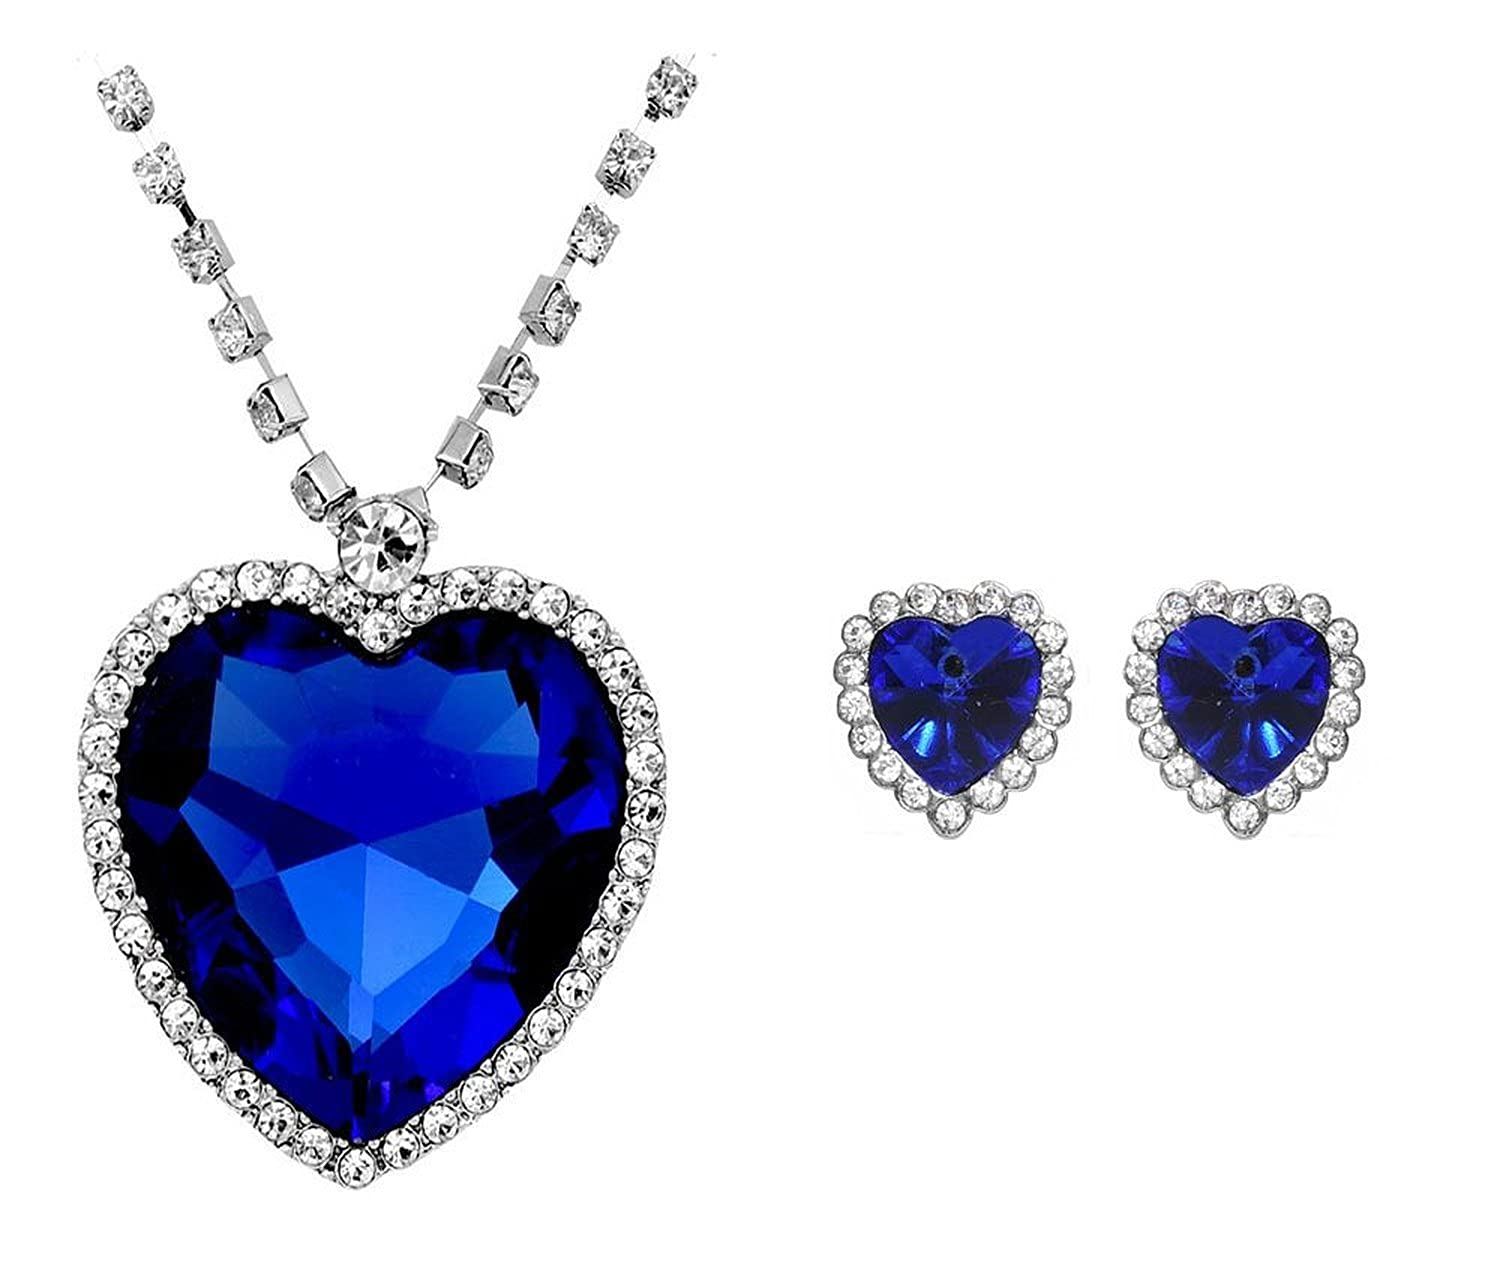 Buy crunchy fashion gold plated blue pendant set for girlsfper018 buy crunchy fashion gold plated blue pendant set for girlsfper018 online at low prices in india amazon jewellery store amazon aloadofball Gallery